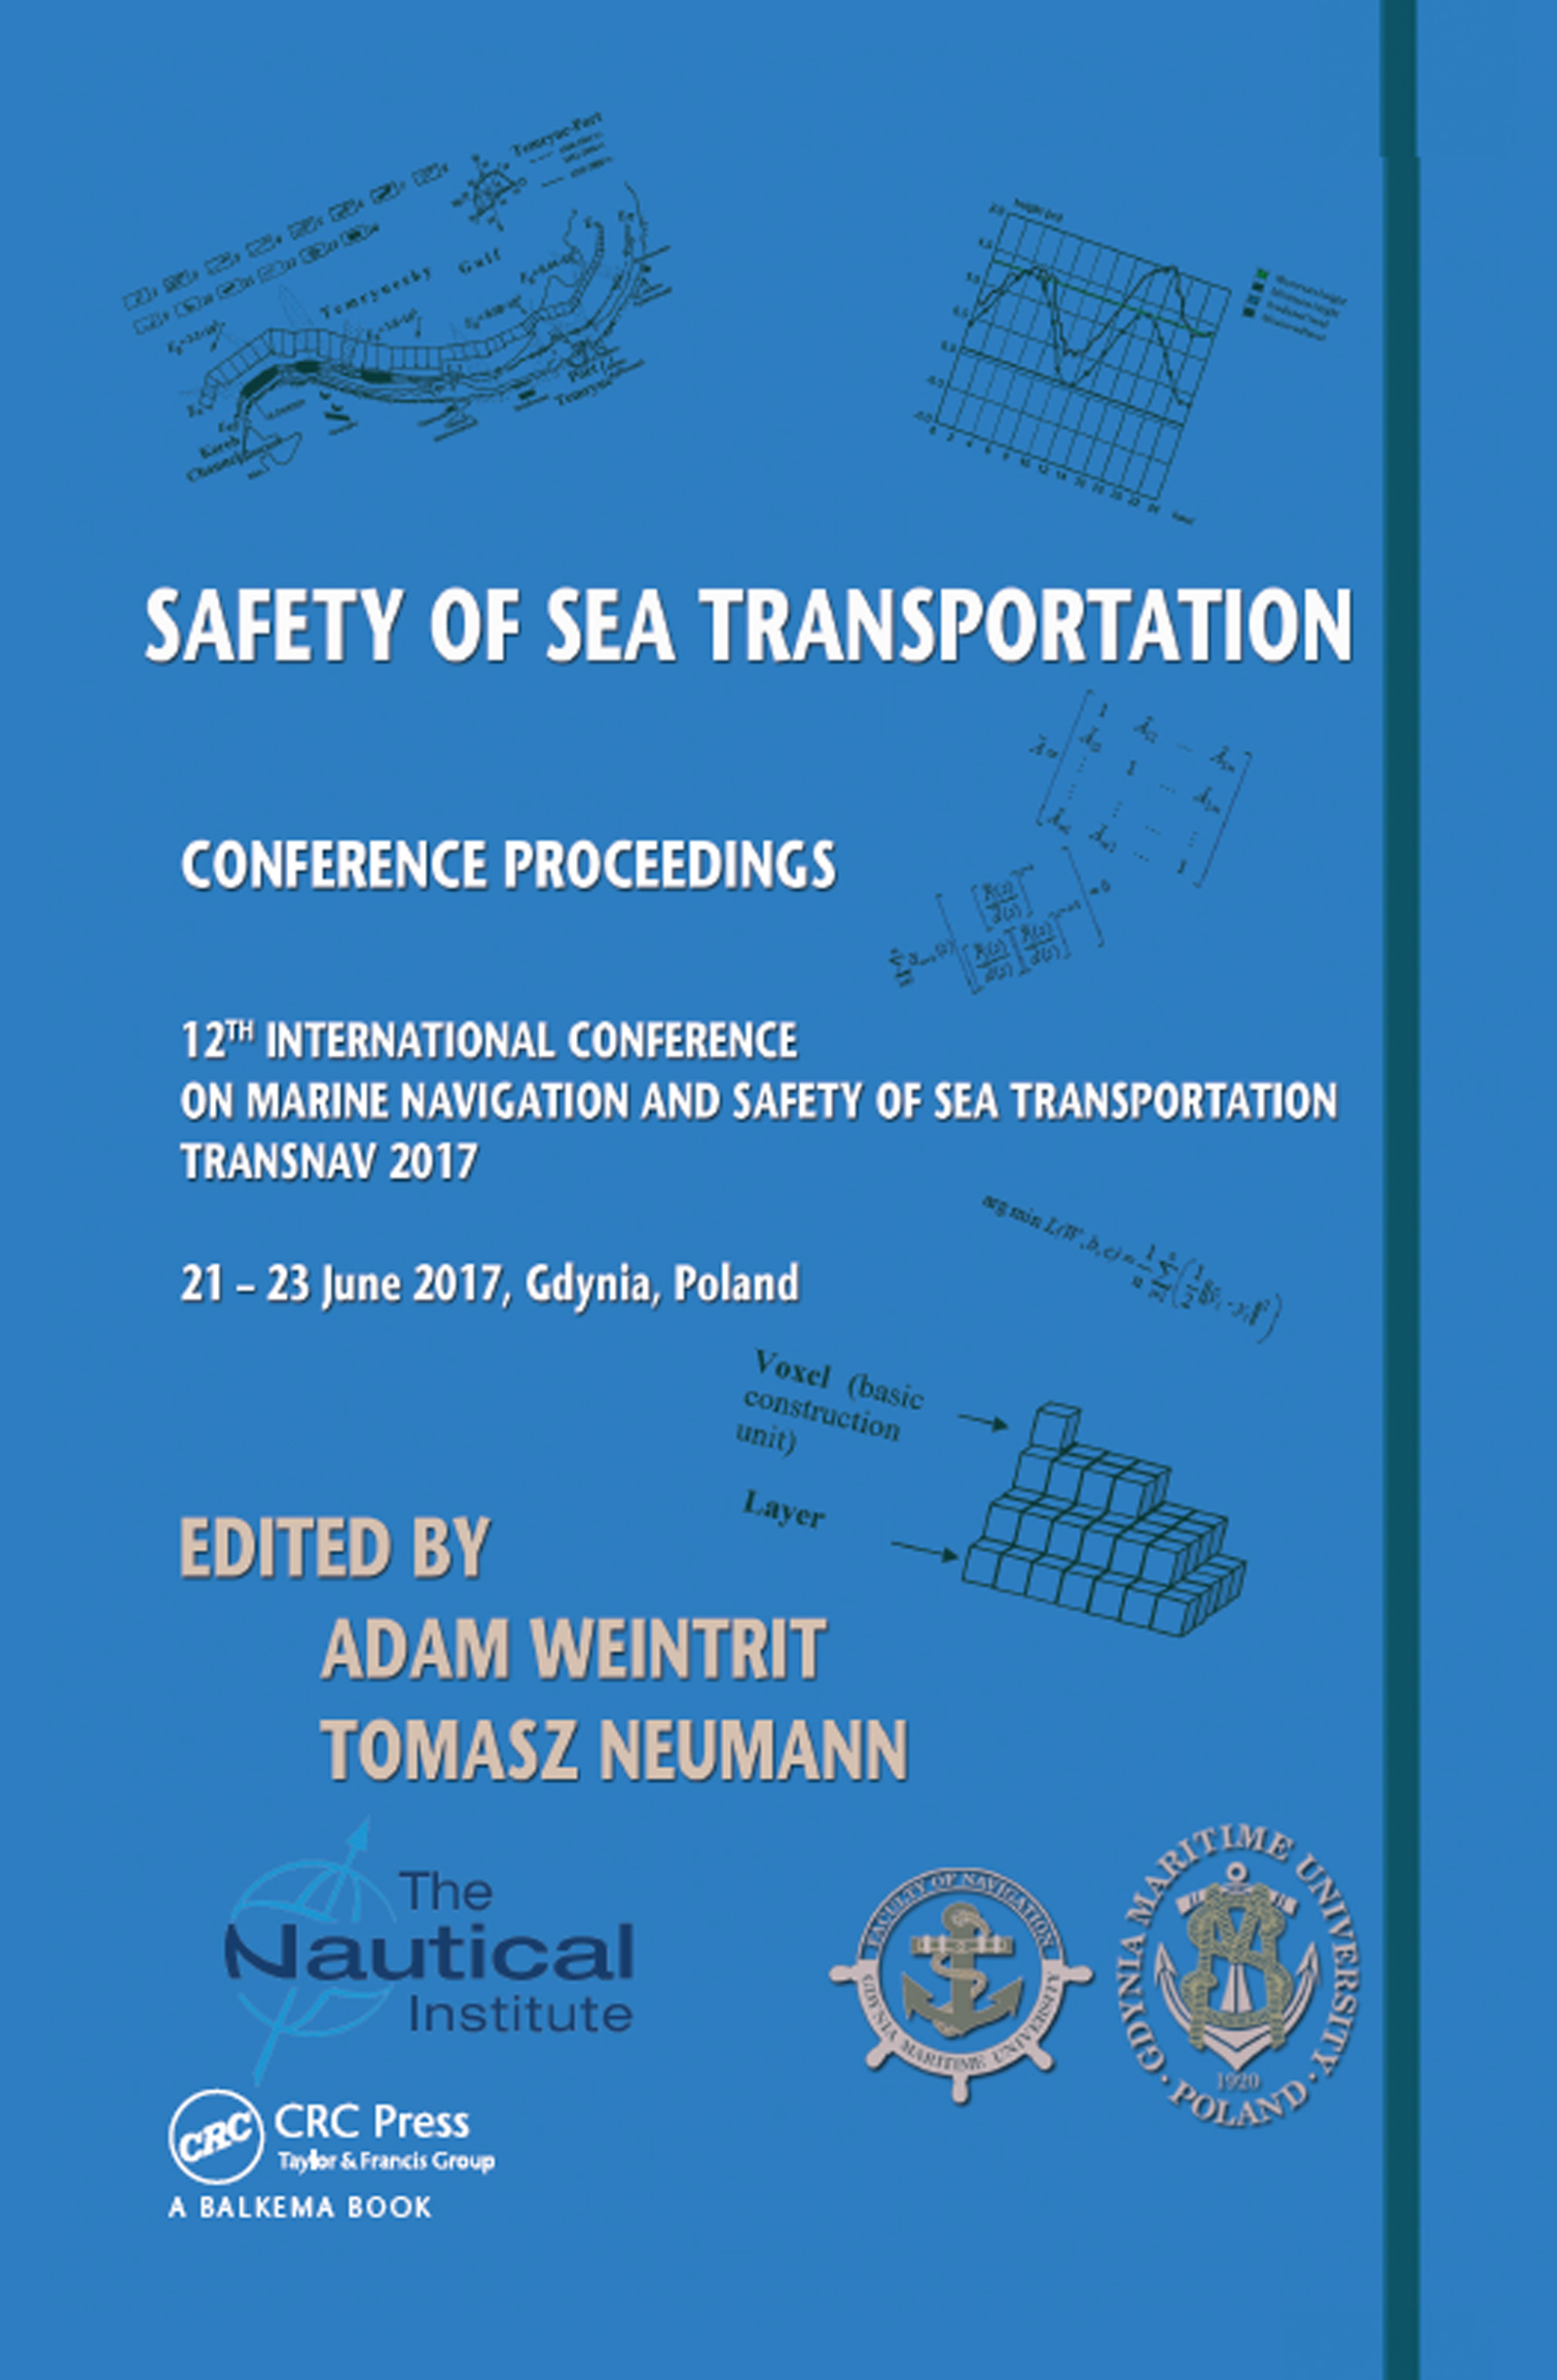 Safety of Sea Transportation: Proceedings of the 12th International Conference on Marine Navigation and Safety of Sea Transportation (TransNav 2017), June 21-23, 2017, Gdynia, Poland, 1st Edition (Hardback) book cover